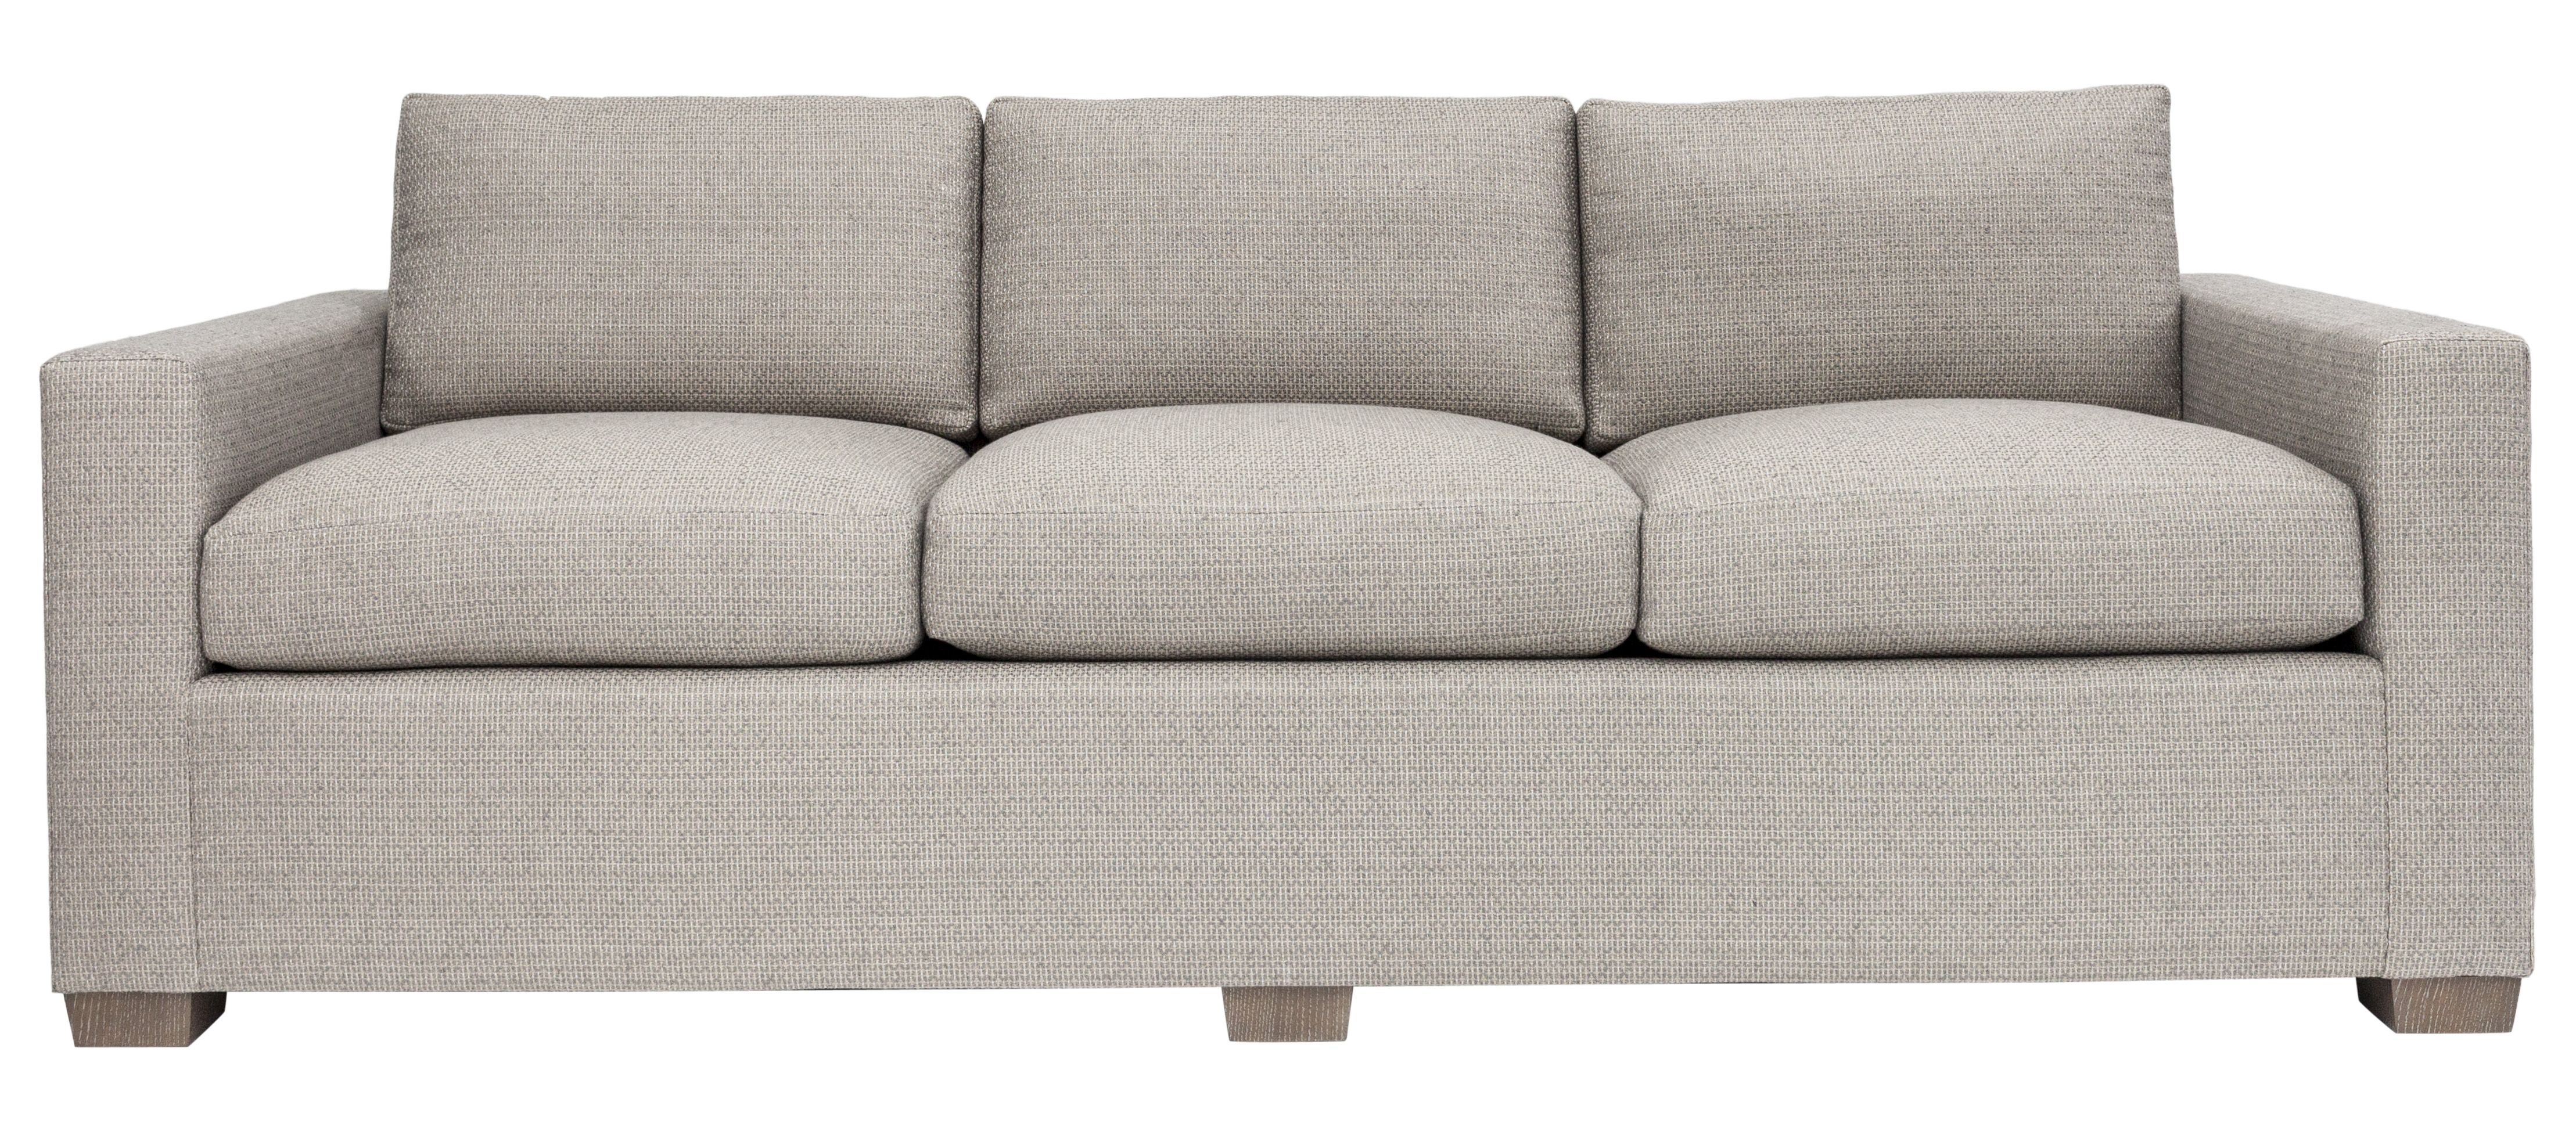 Greenwich Sofa Traditional Sofa Sectional Sofa Staging Furniture